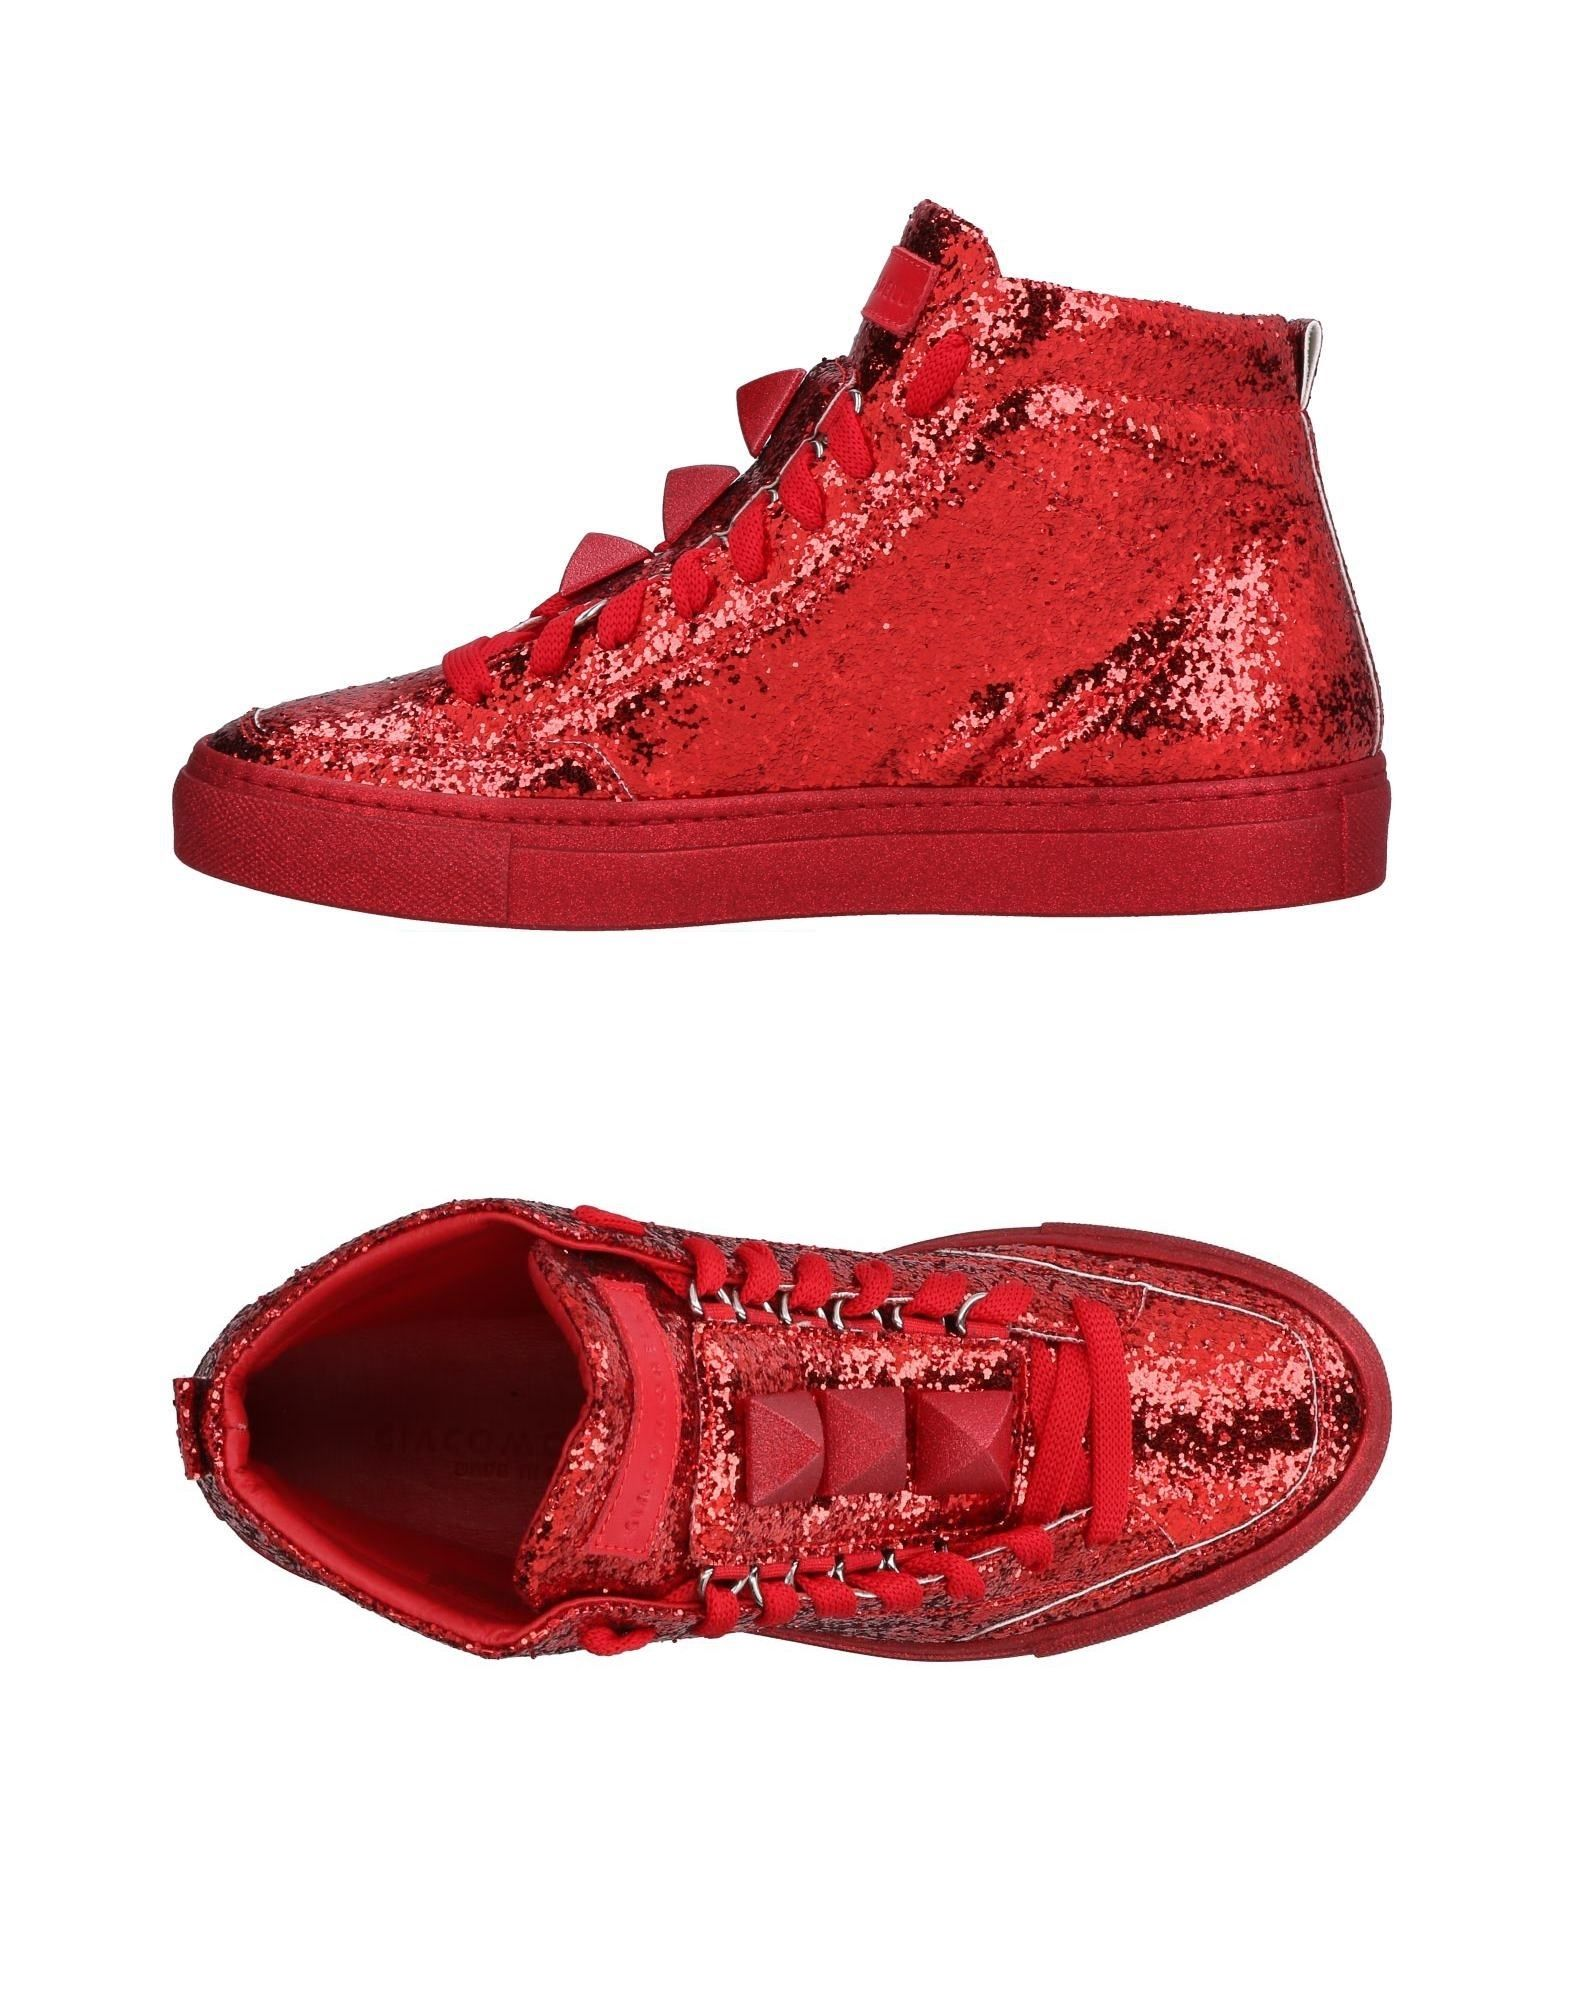 GIACOMORELLI Sneakers in Red